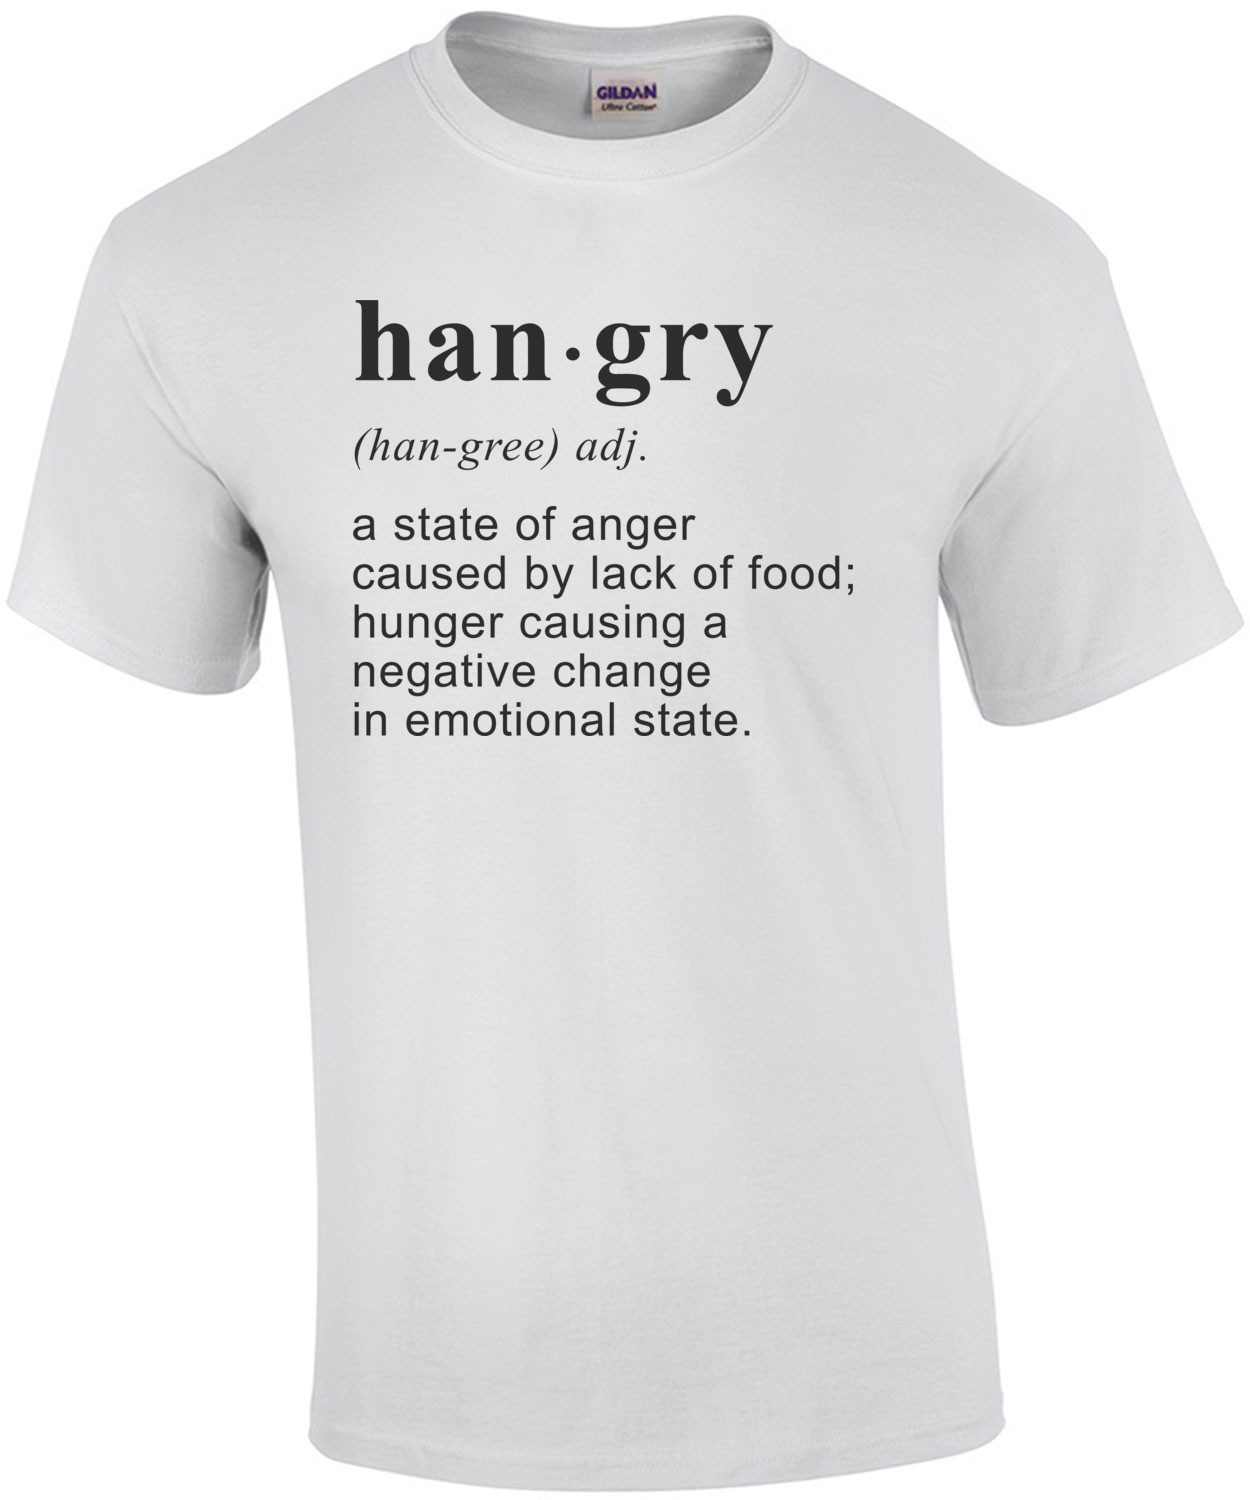 hangry - a state of anger caused by lack of food